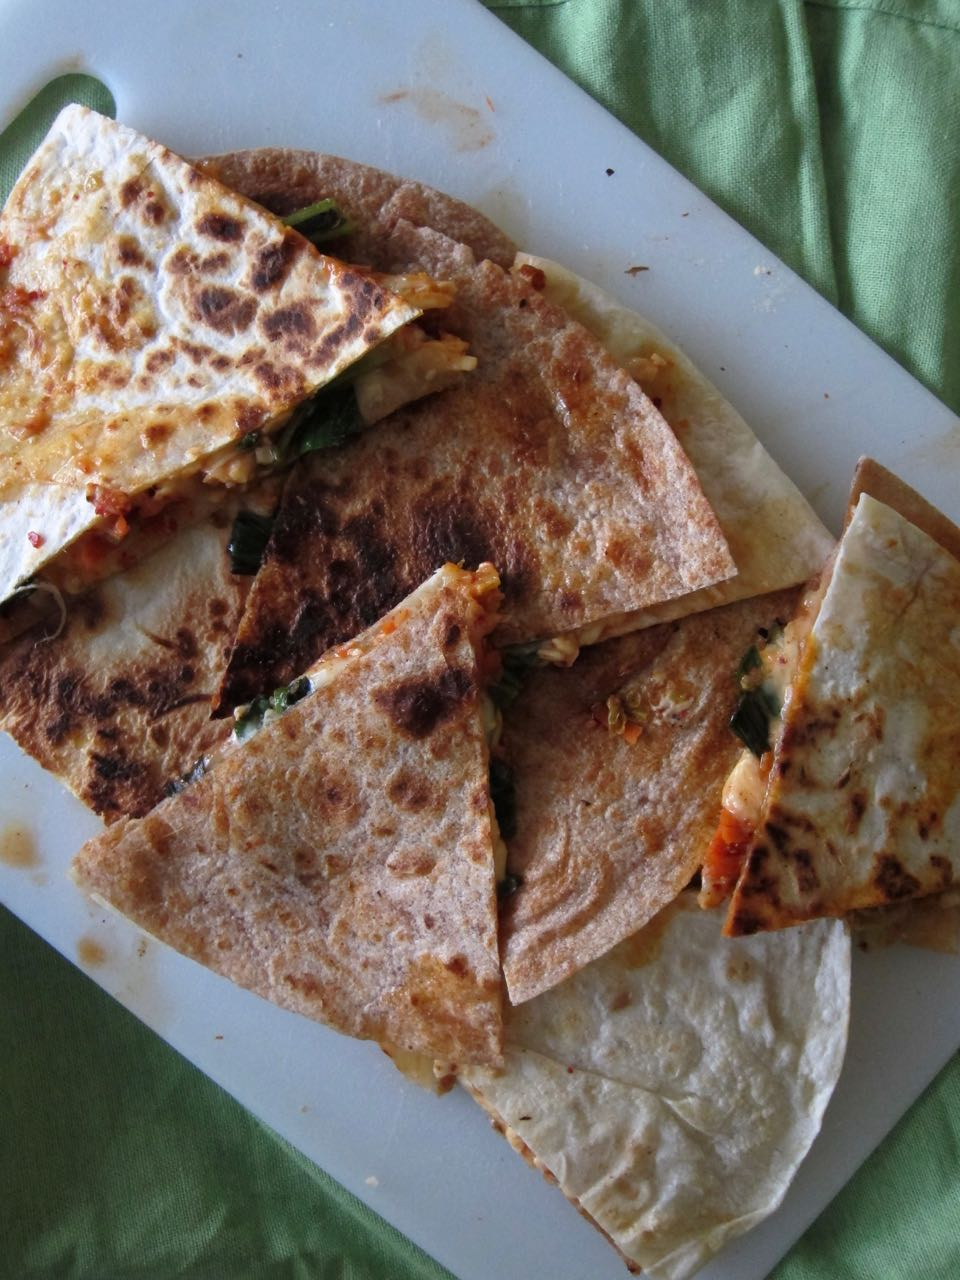 Charred Scallion, Kimchi & Cheese quesadillas